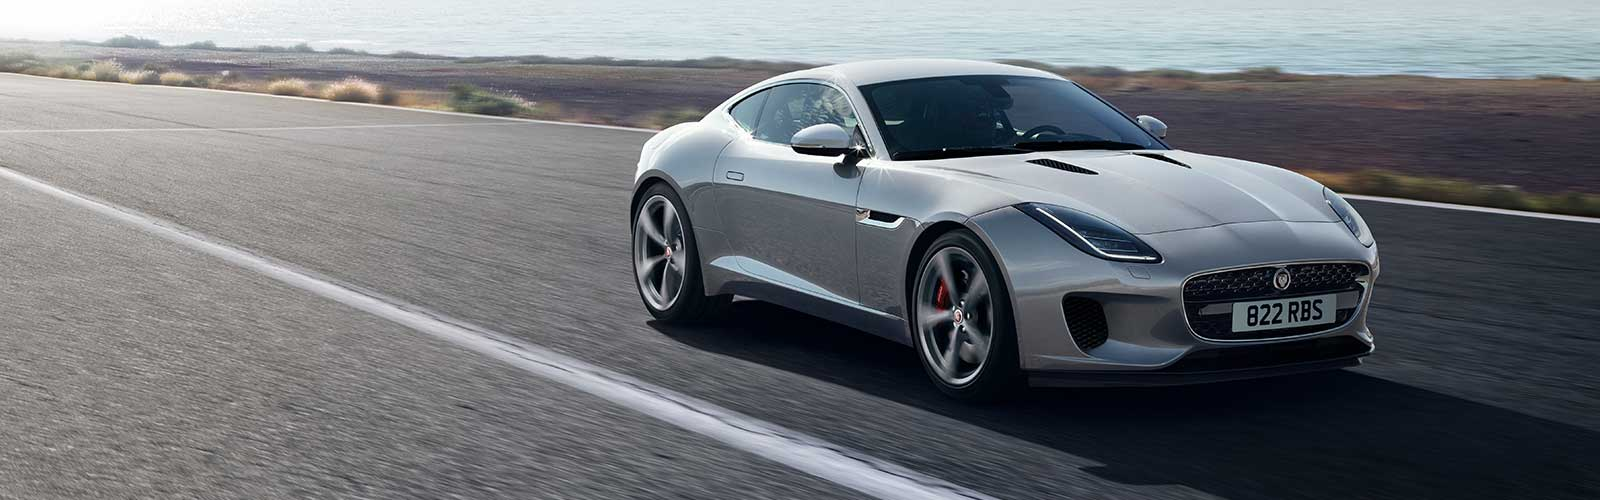 Black F-Type driving down country road